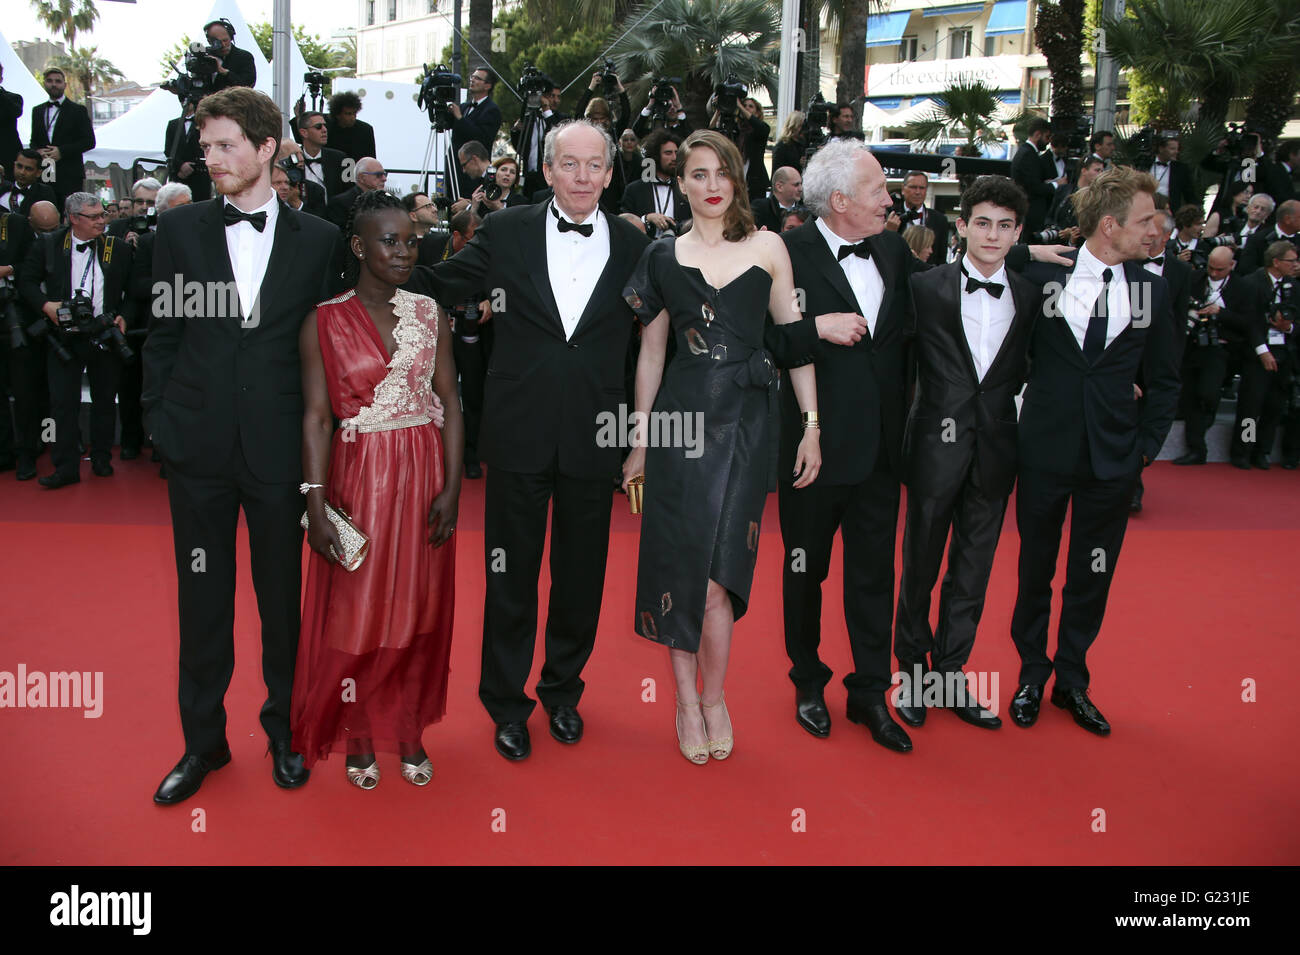 CAPTION CORRECTS ACTRESS NAME FROM ANDI EIGENMANN TO ADELE HAENEL Actors Olivier Bonnaud, Nadege Ouedraogo, director - Stock Image